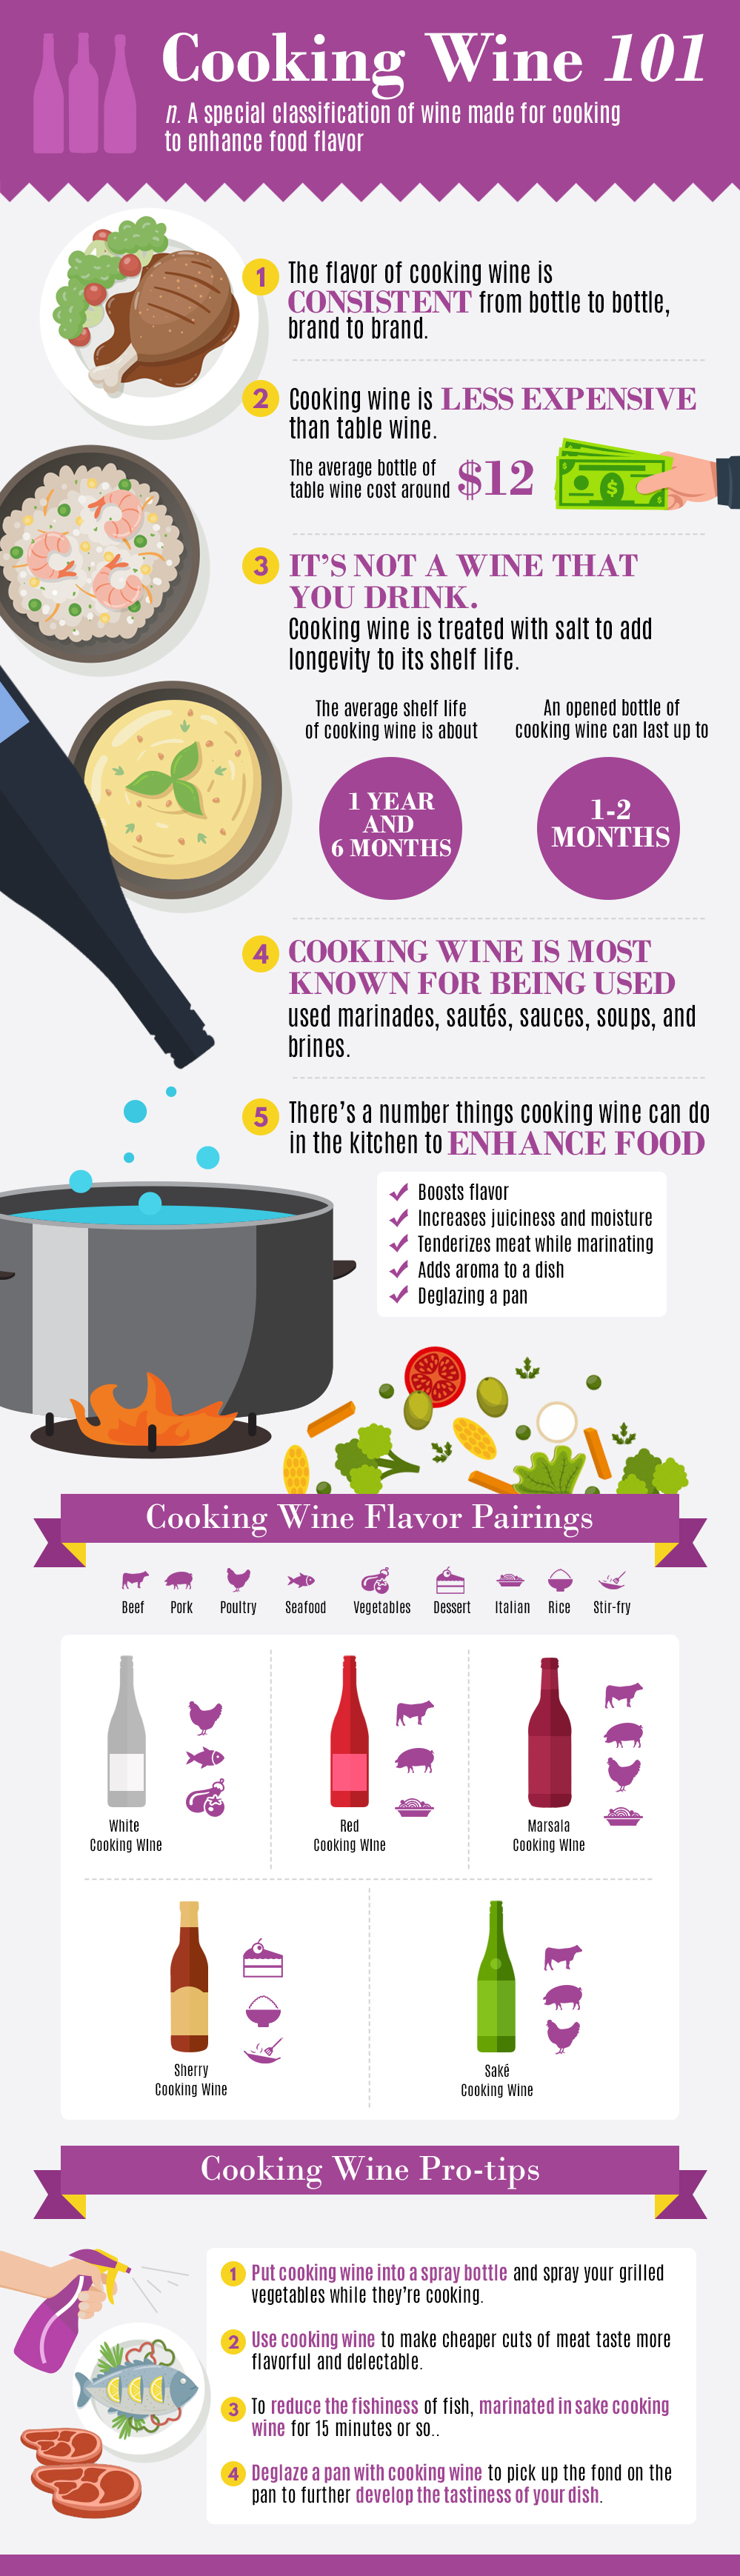 Cooking Wine 101 #infographic